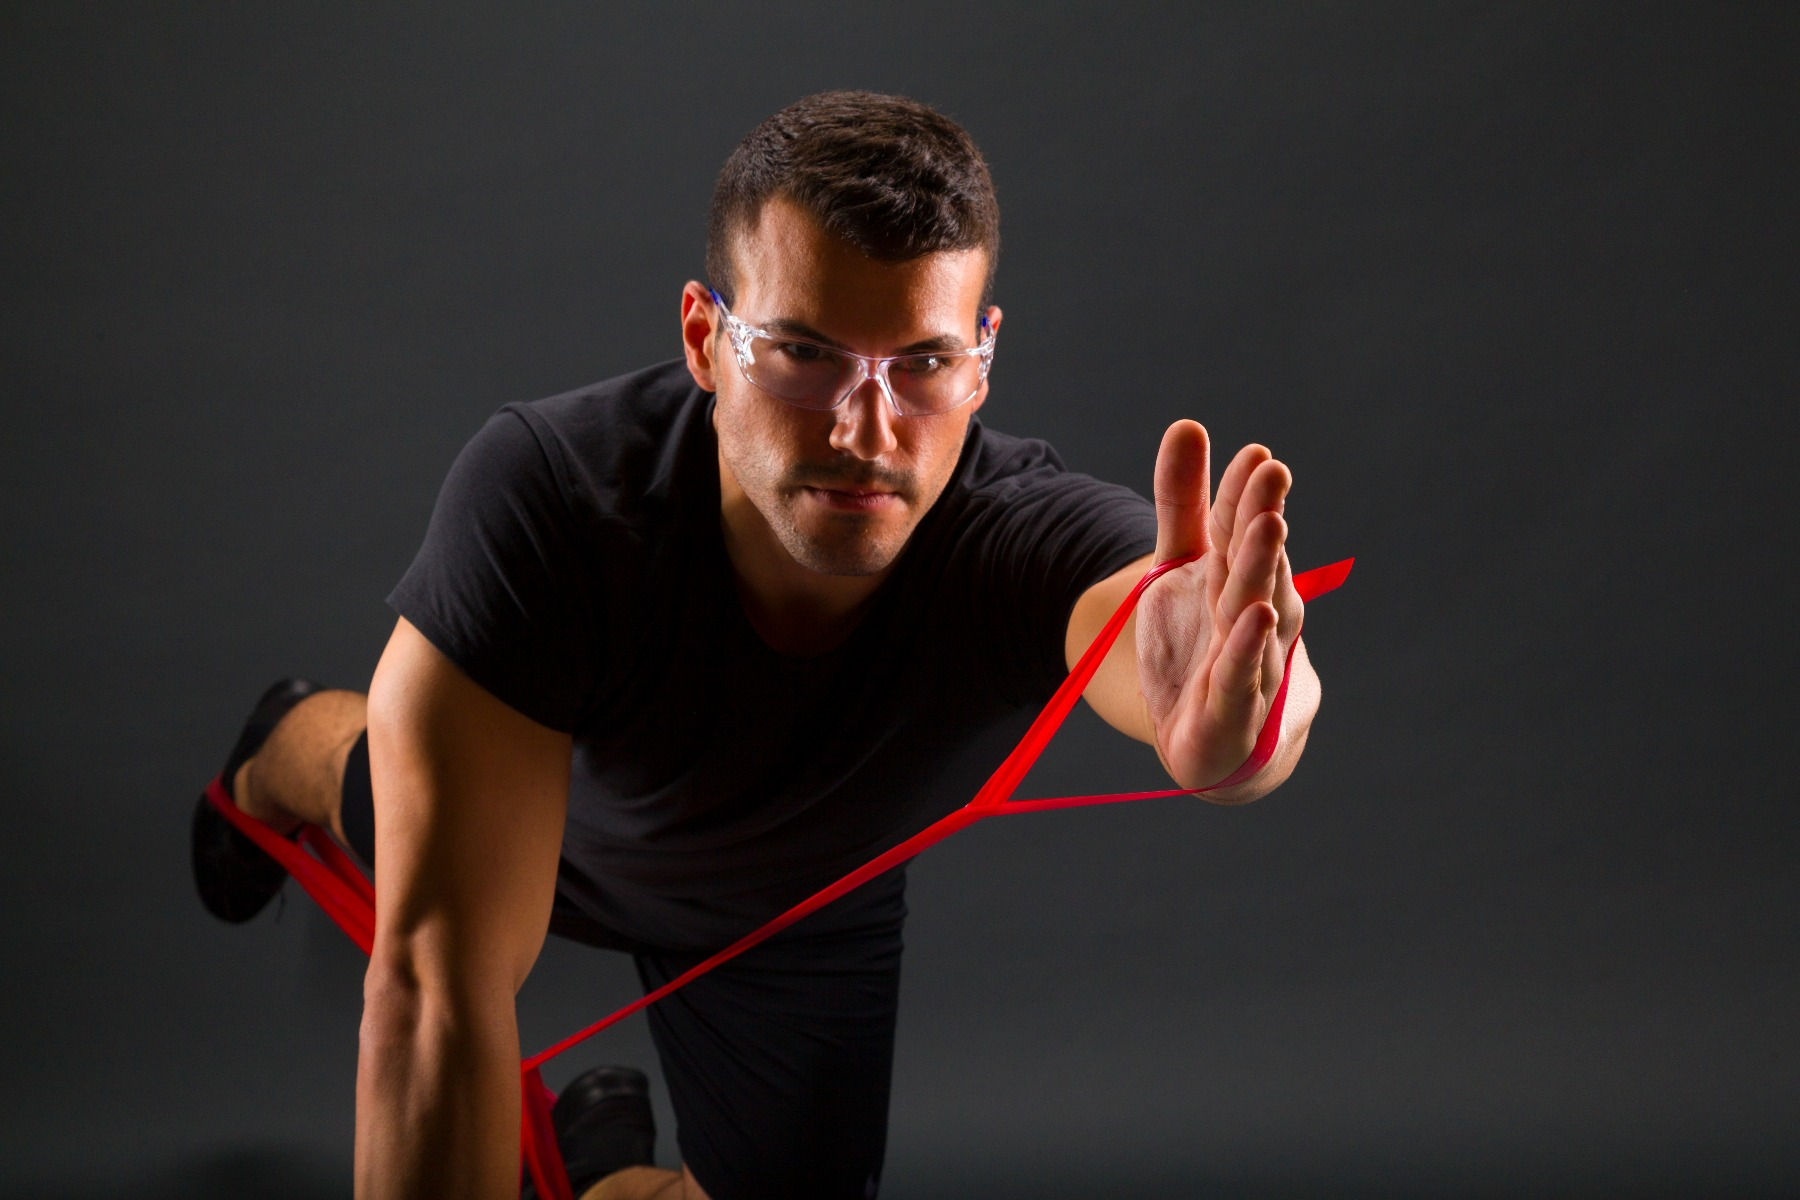 Man working out using a red TheraBand in medium resistance